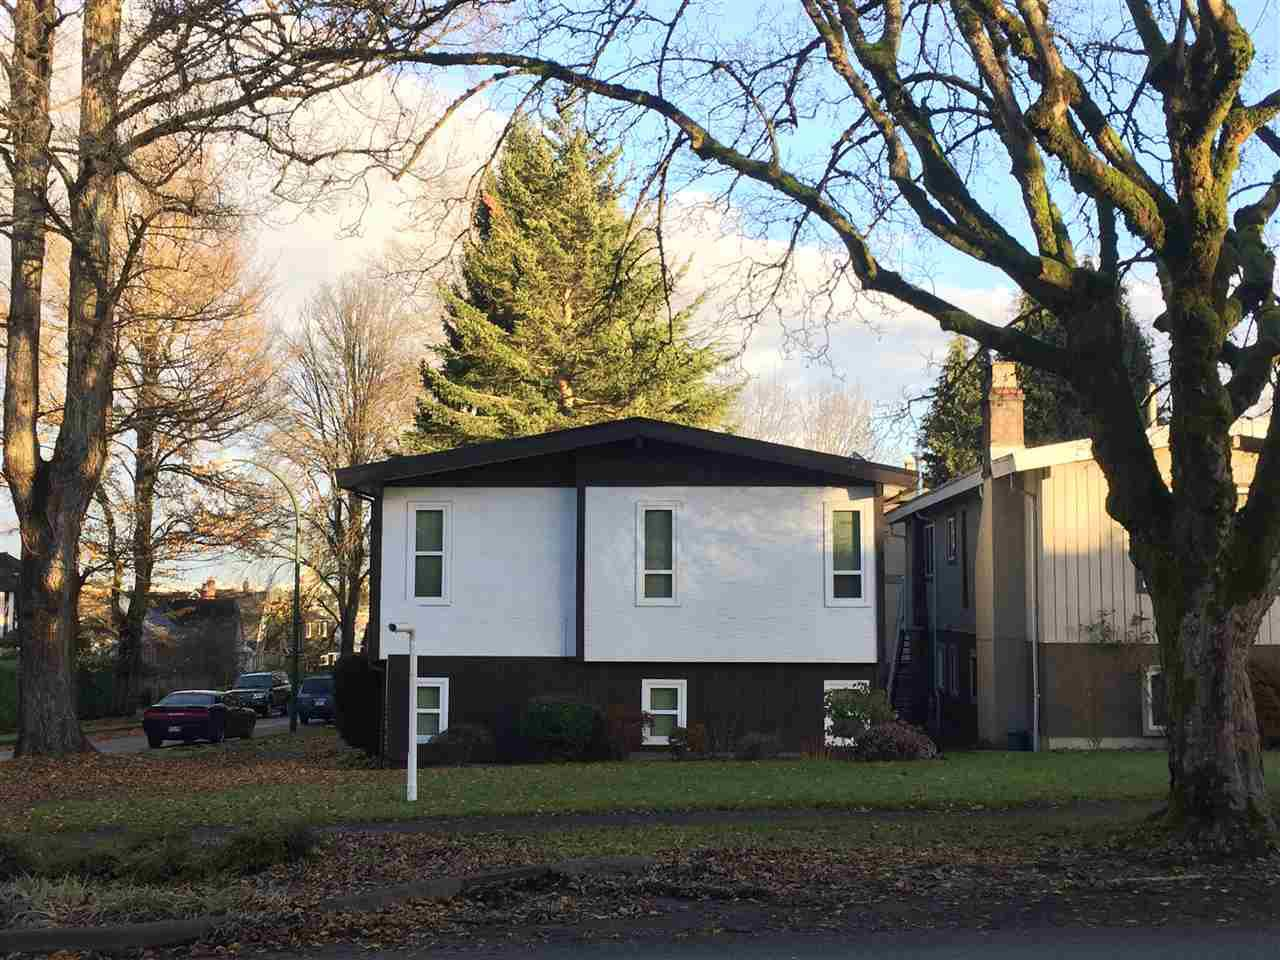 Main Photo: 3292 W. 22nd Ave, in Vancouver: Dunbar House for sale (Vancouver West)  : MLS®# R2028776